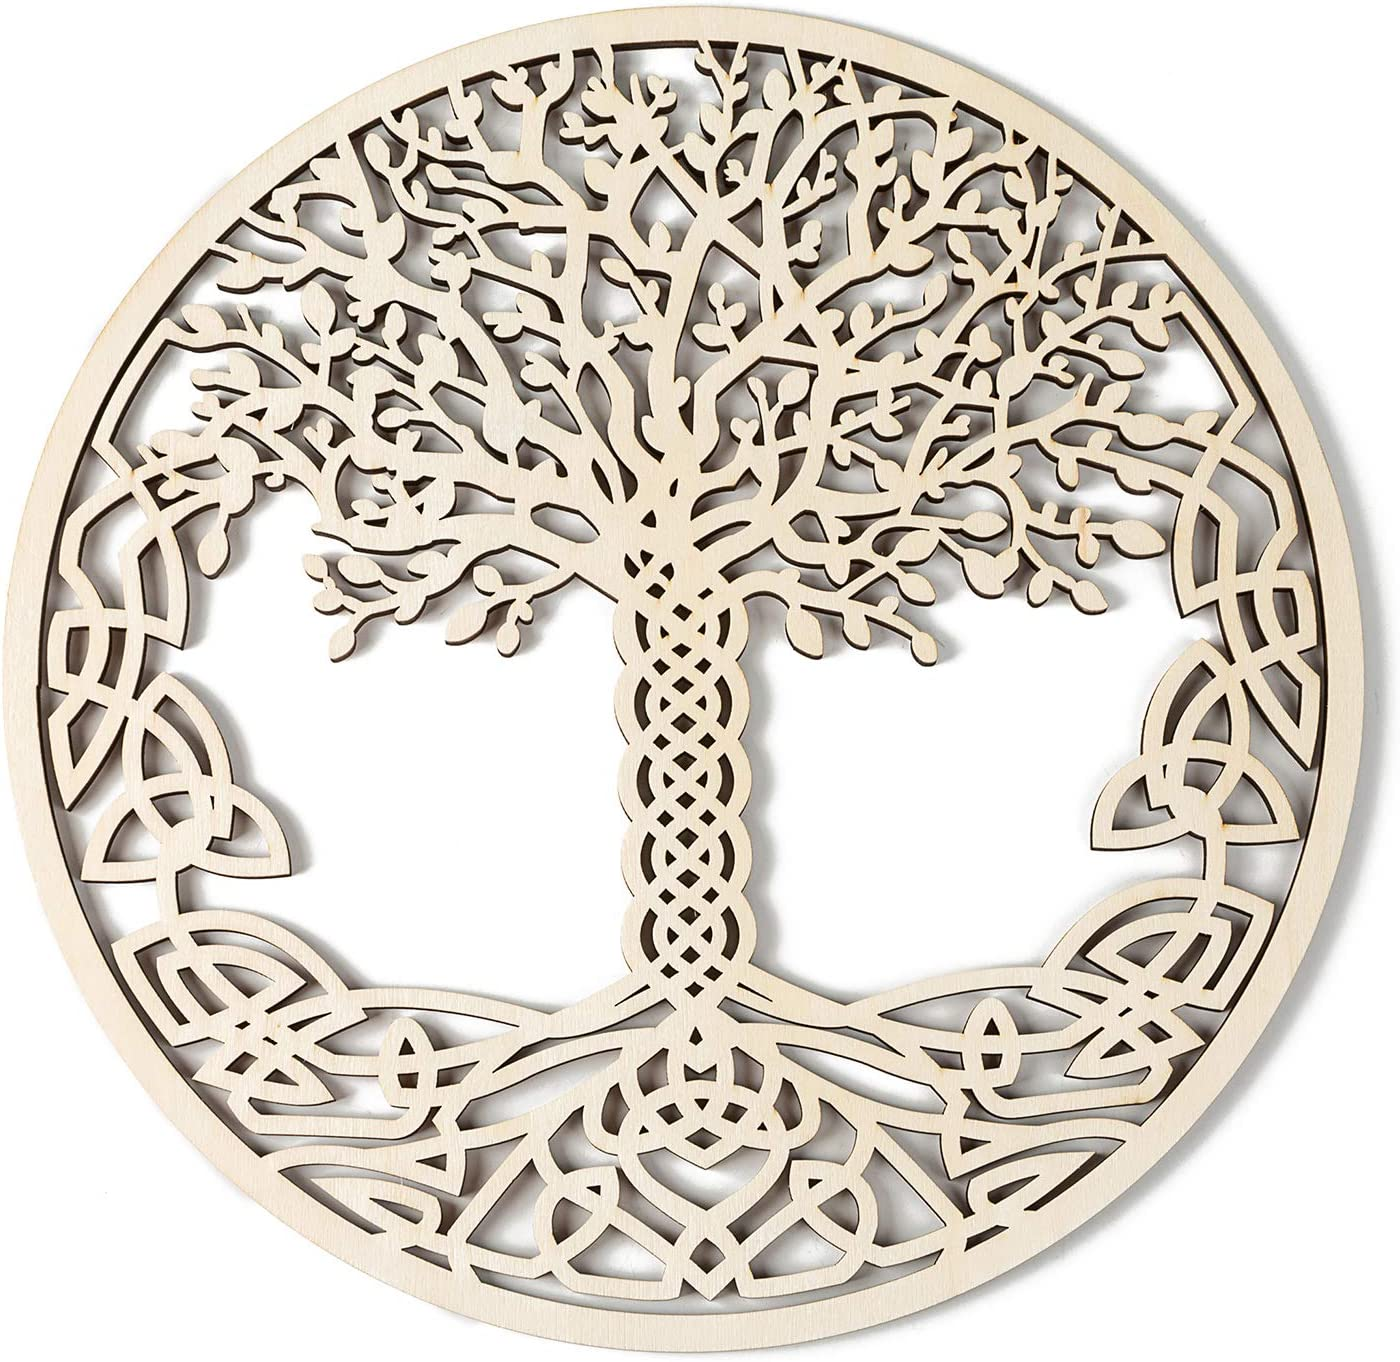 """Simurg 11.5"""" Celtic Tree of Life Wall Decor Wooden Tree of Life Wall Art - Housewarming Gift Home Decoration Indoor and Outdoor Wall Hanging Sculpture"""